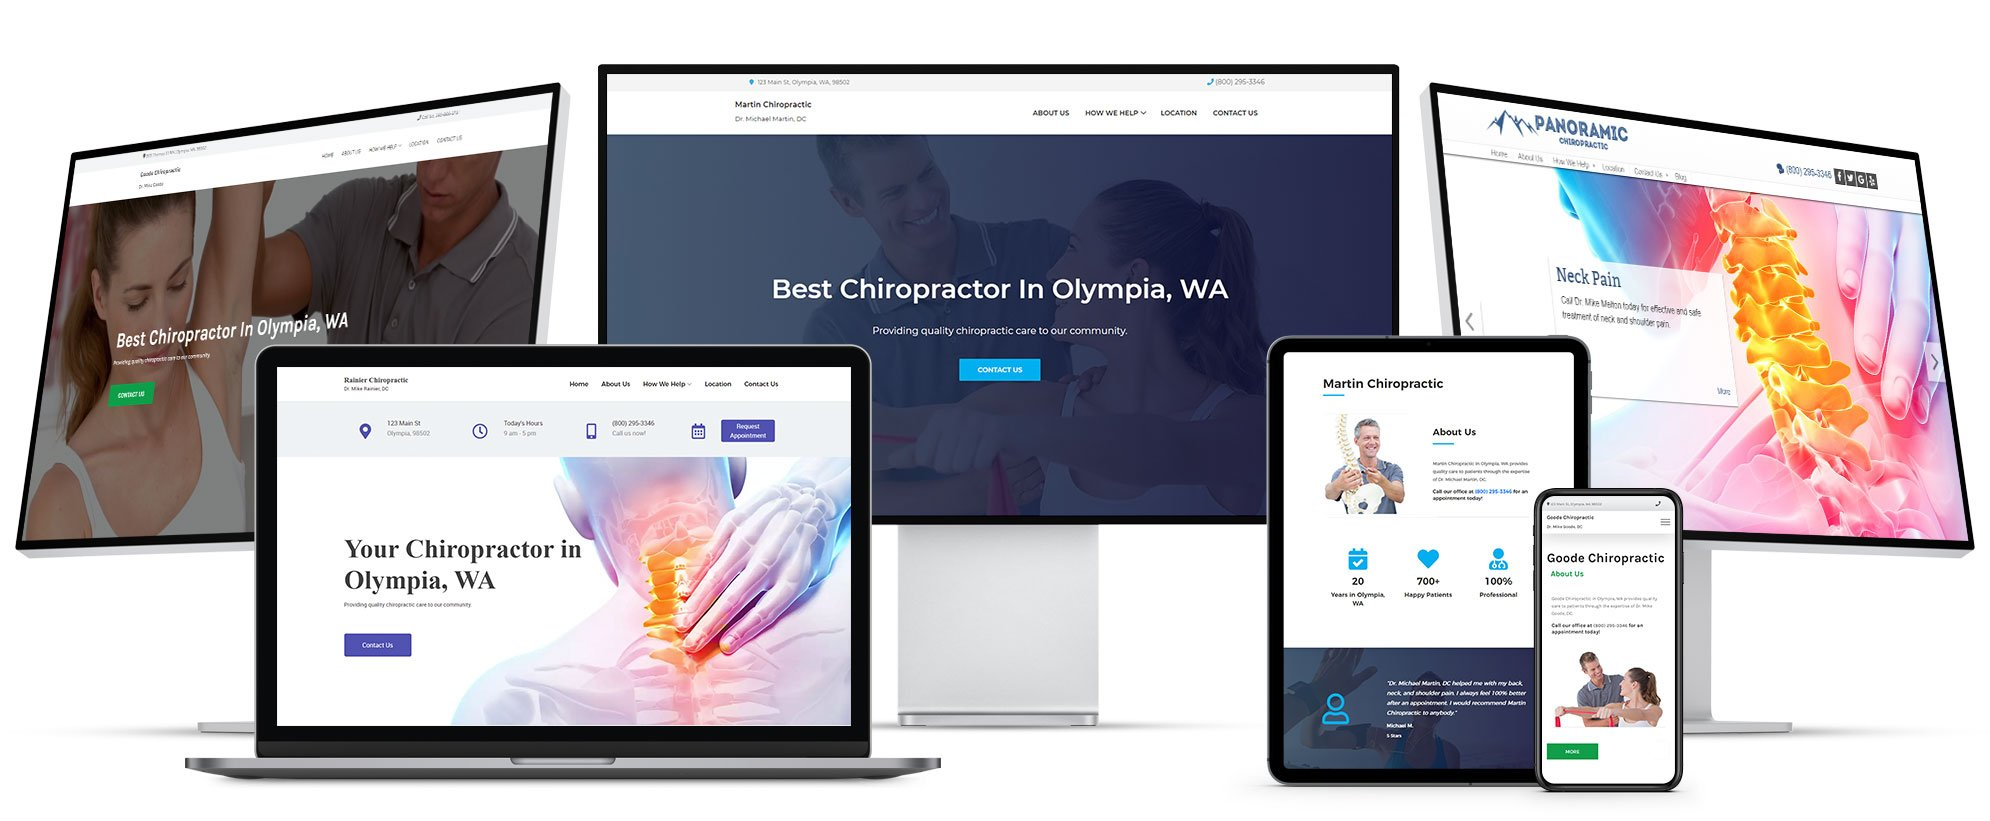 ChiroHosting - N8 Chiropractic Website - 100% Mobile-friendly websites look professional on every device